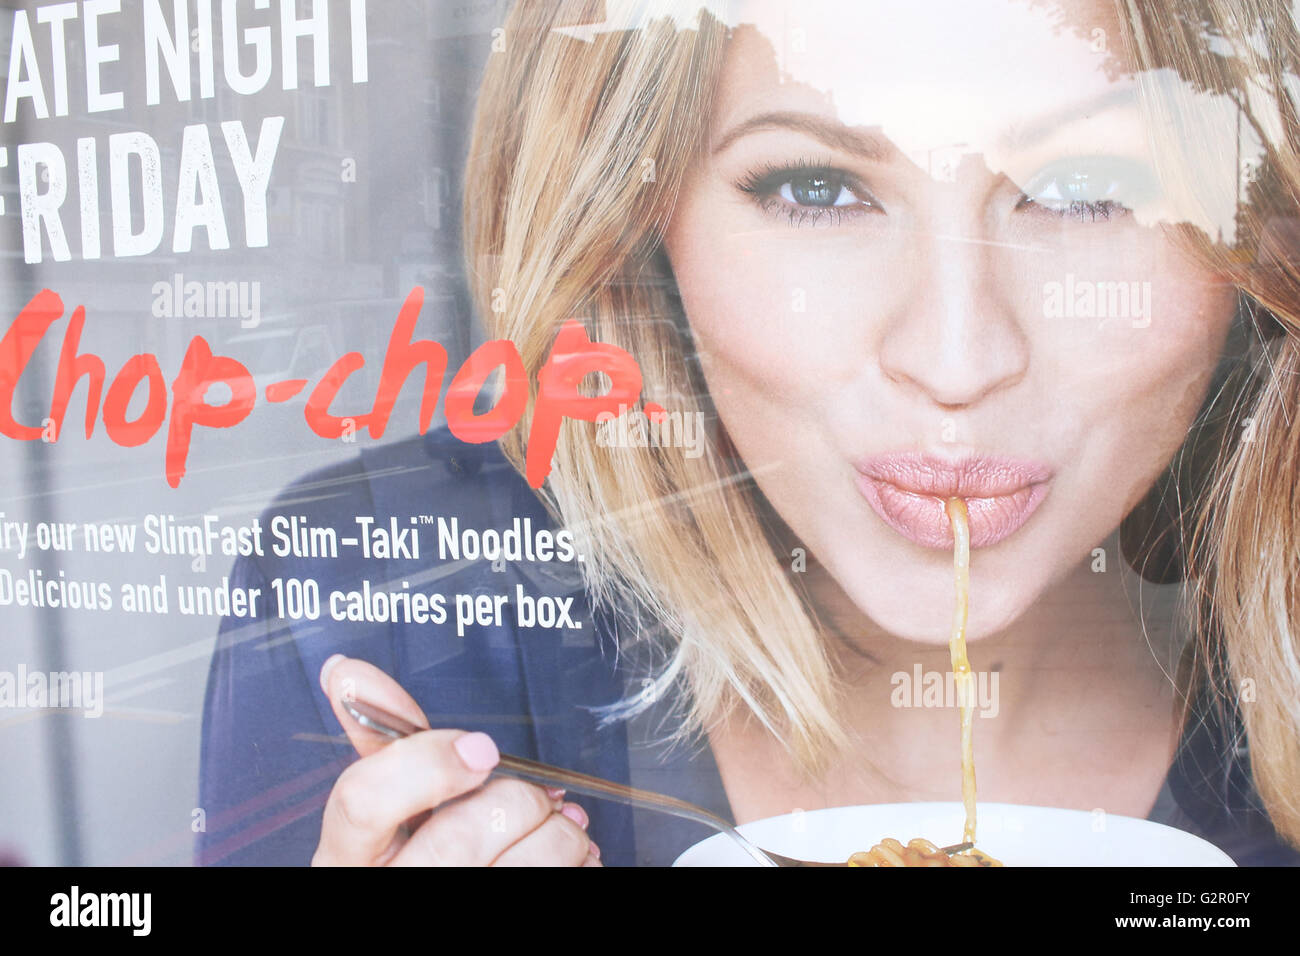 London street reflected in advert for noodles featuring woman - Stock Image